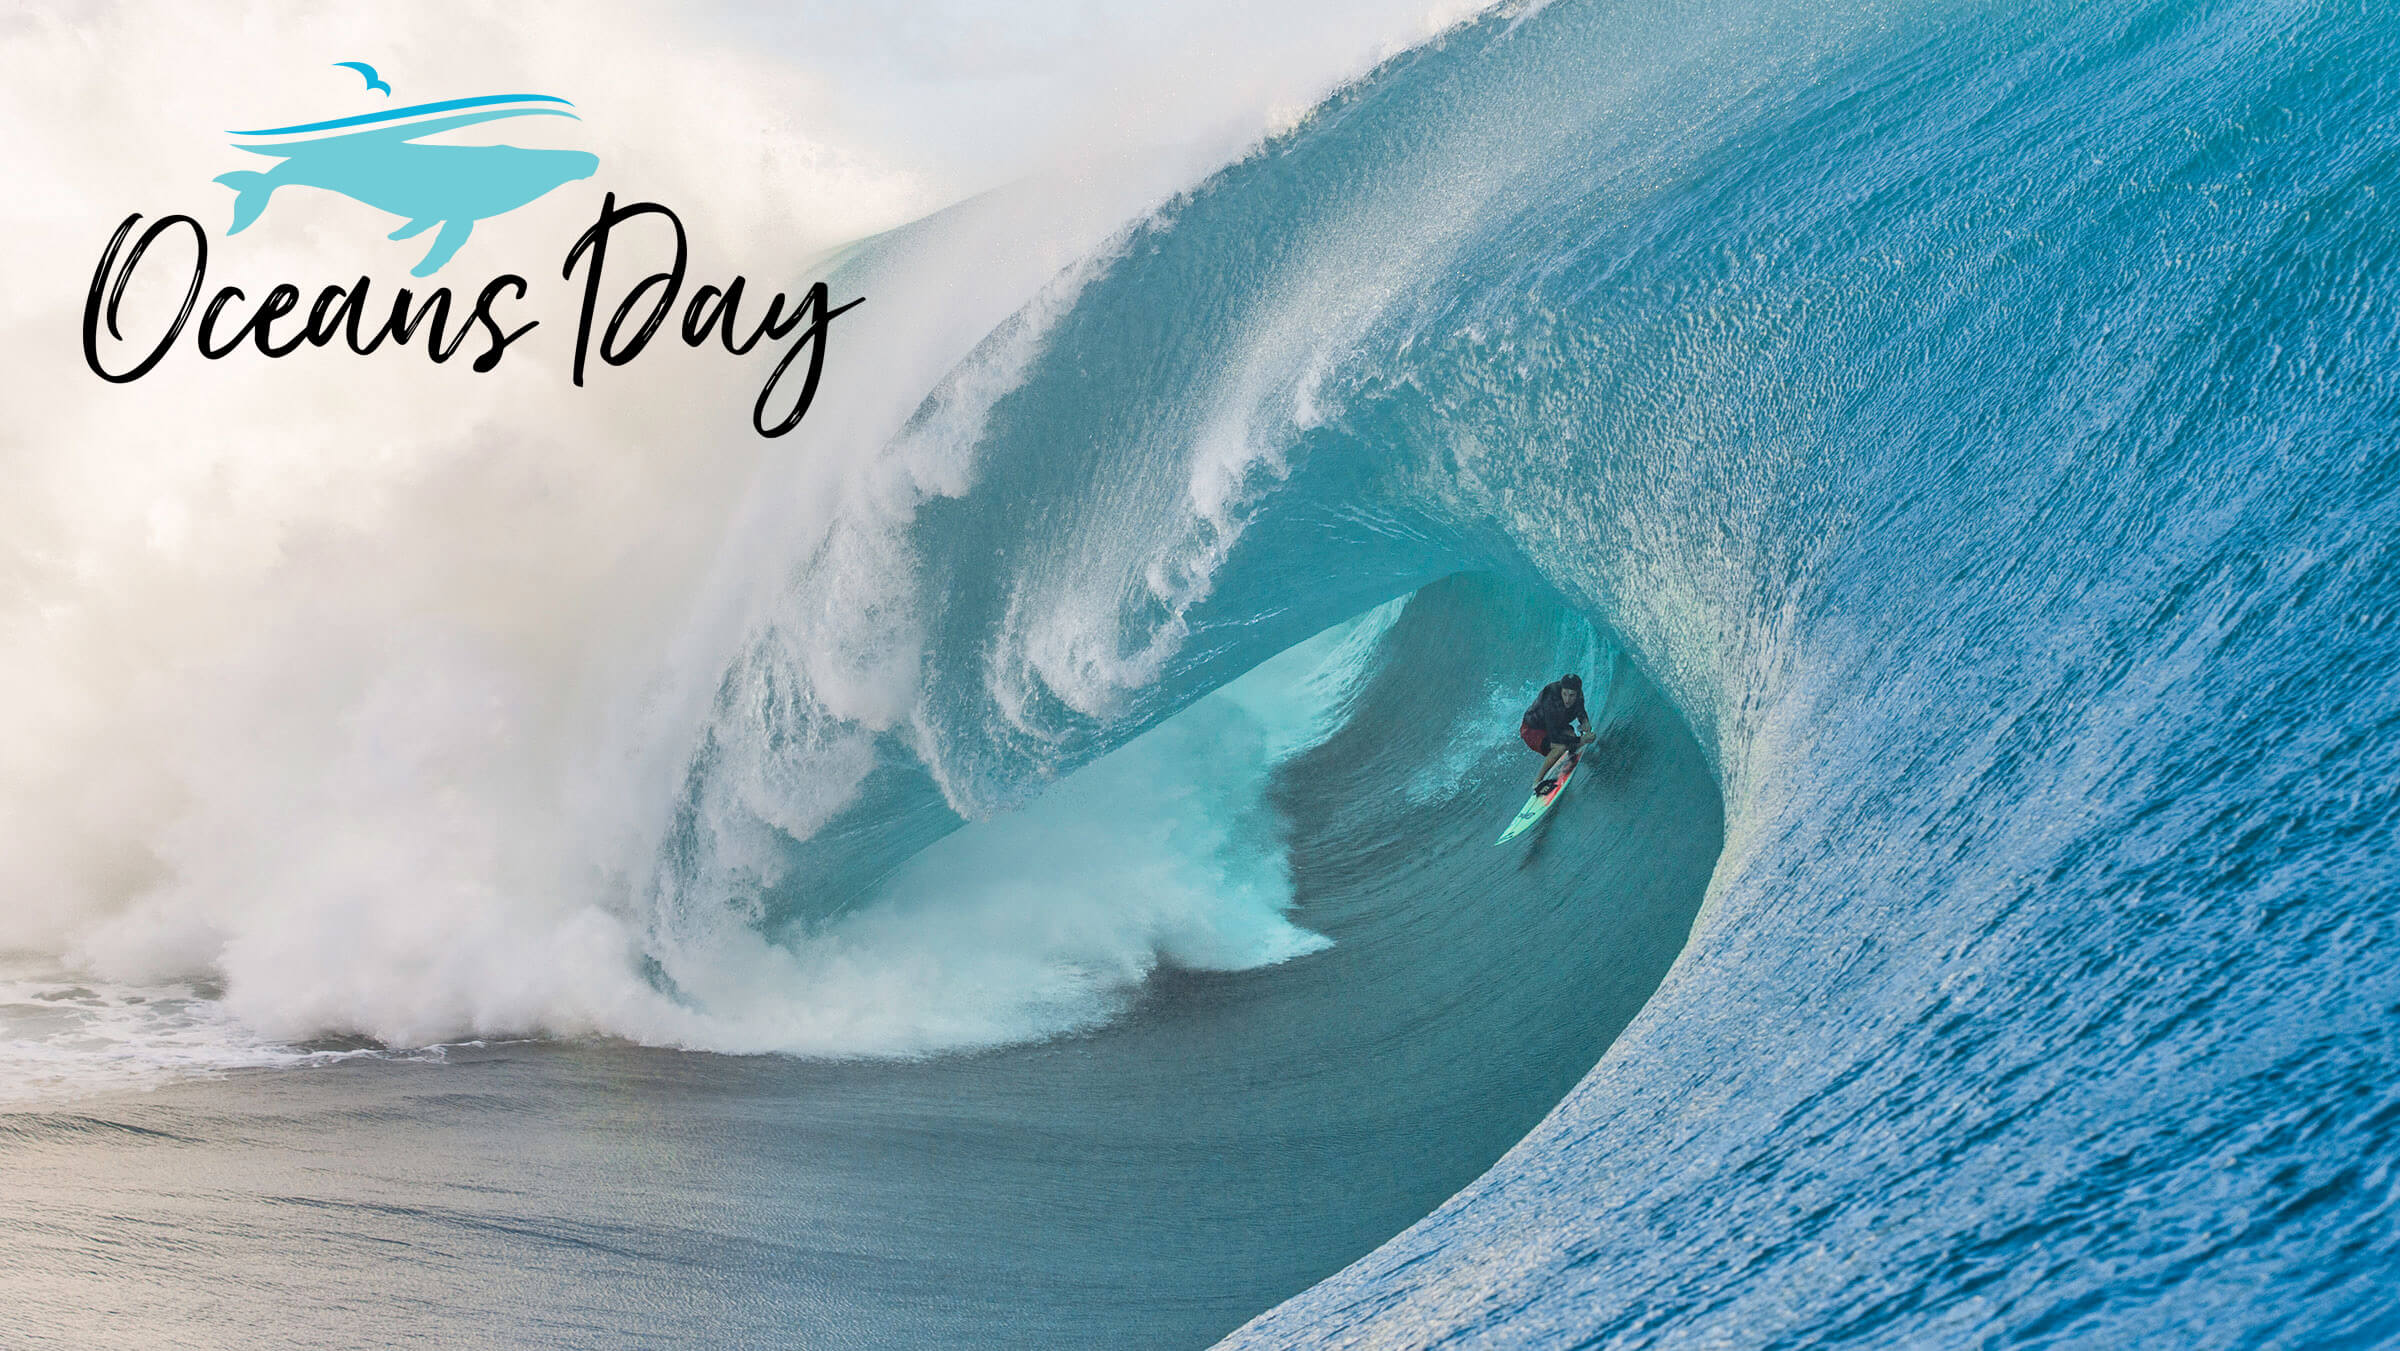 happy world oceans day surfing hd wallpaper